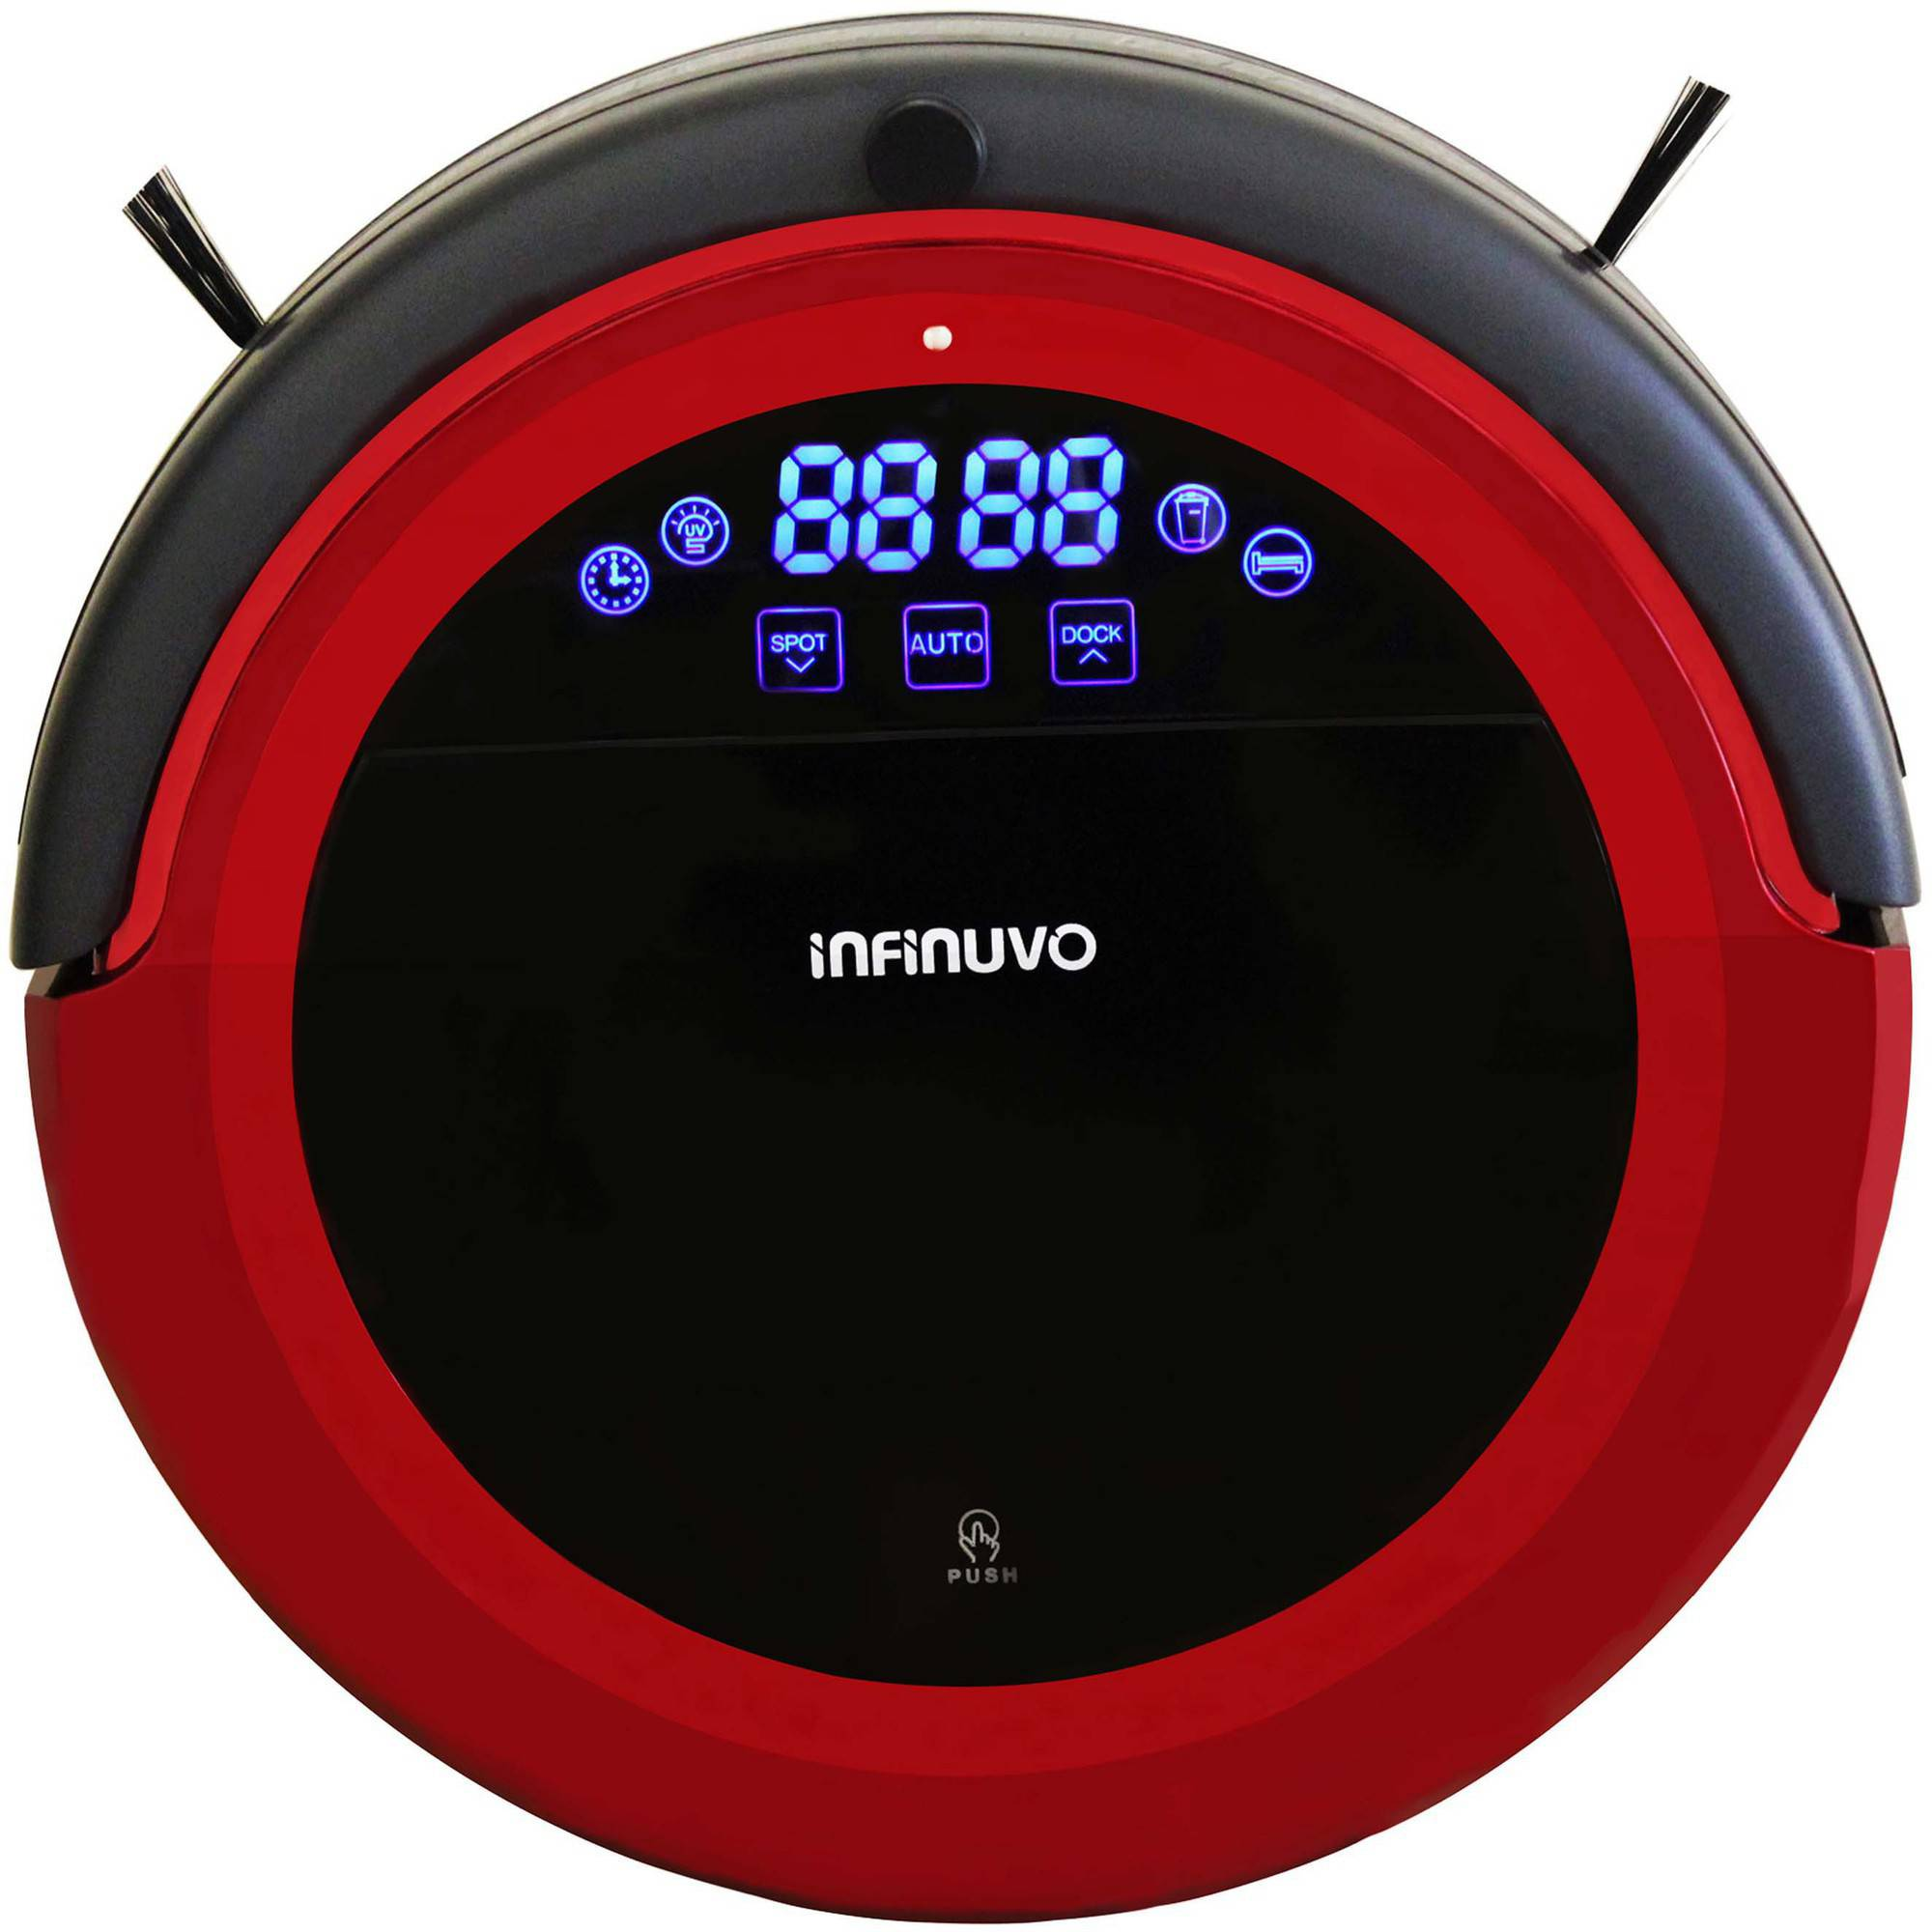 metapo Infinuvo Hovo 710 Robotic Vacuum Cleaner Dry Mop, Red